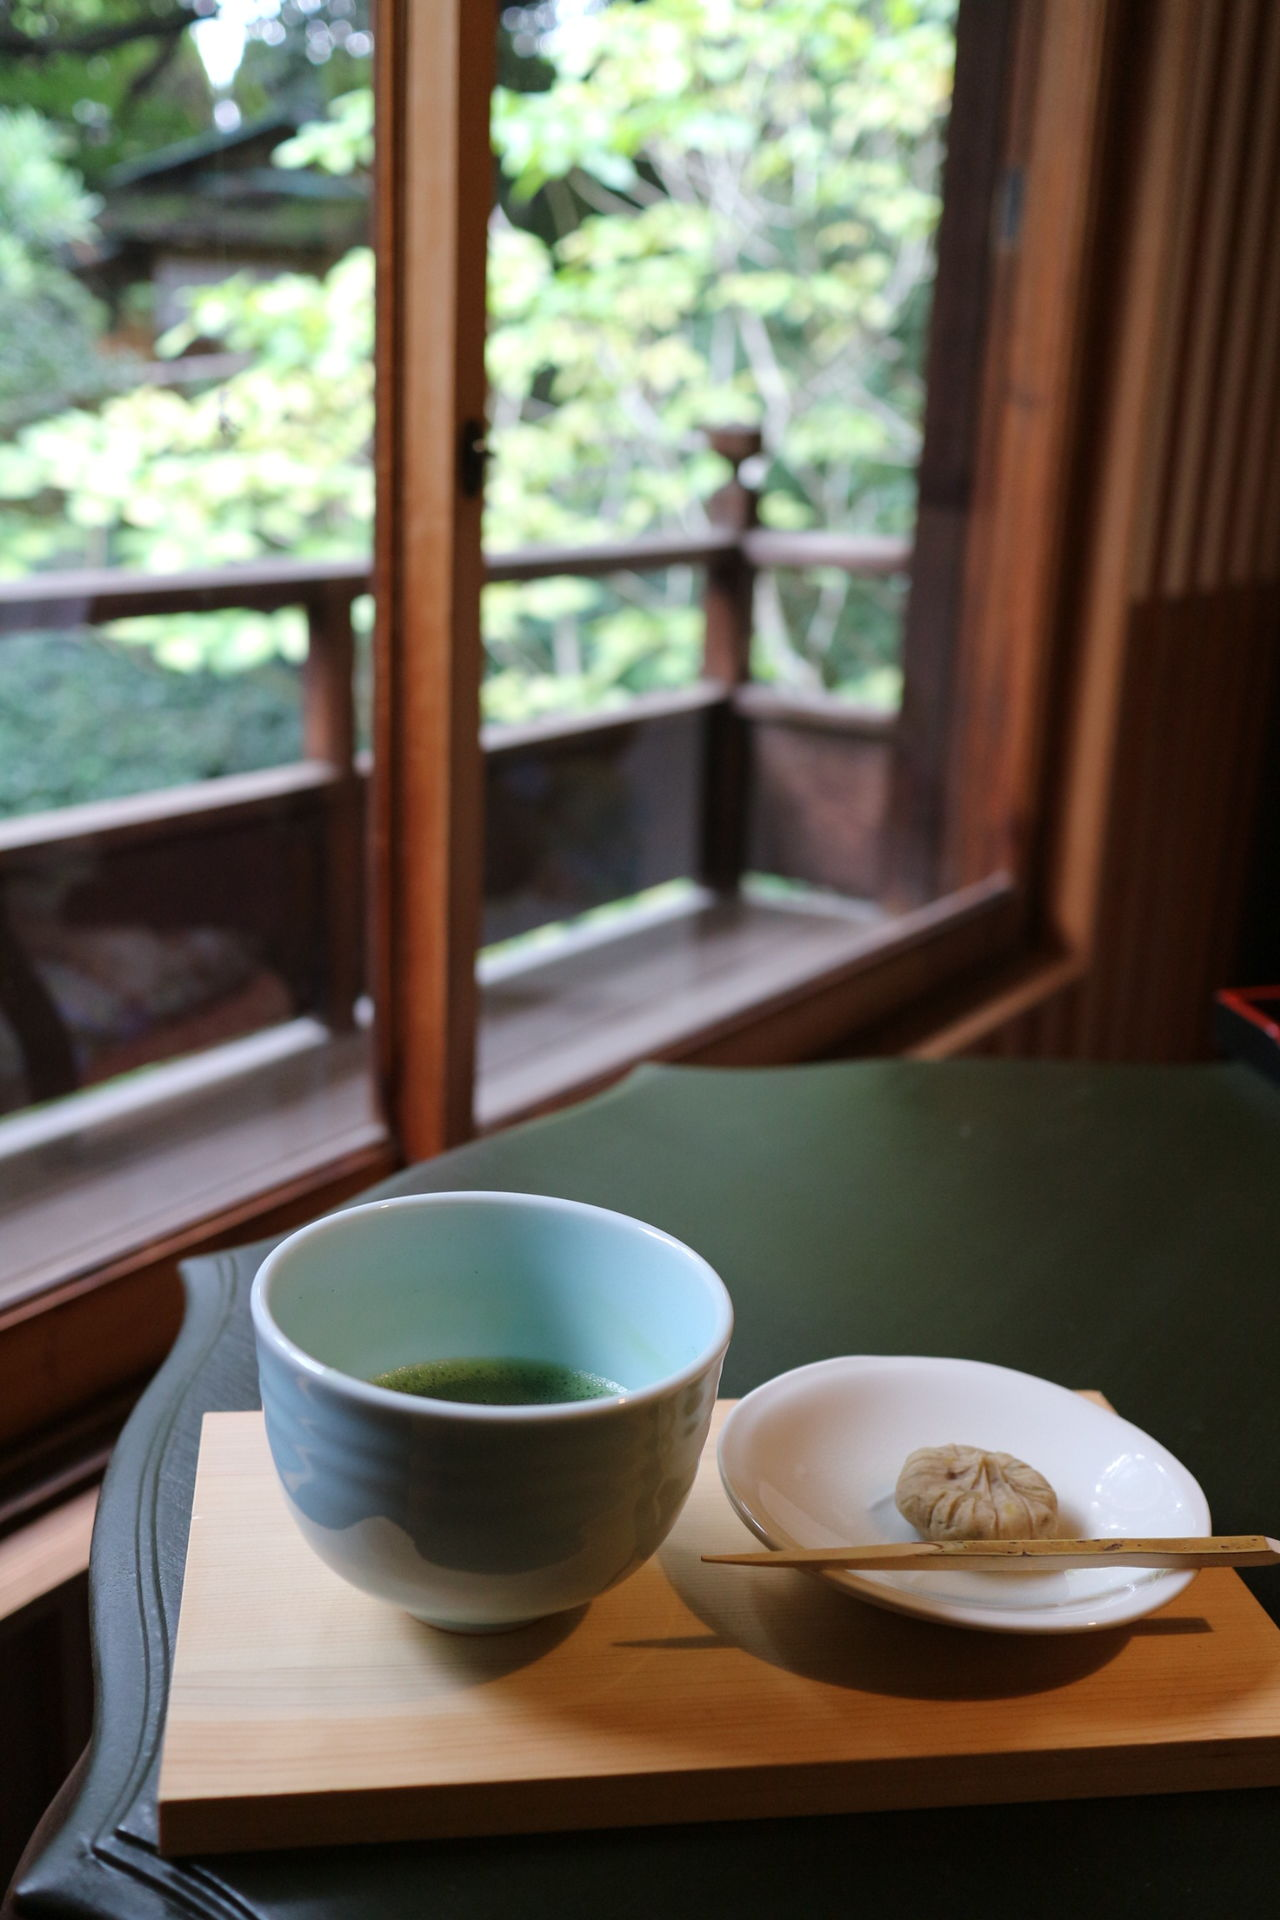 Bowl Cultures Cup Day Drink Healthy Eating Indoors  Japan Japanese Tea Cup Matcha No People Refreshment Tea - Hot Drink Tea Ceremony Tea Cup Window